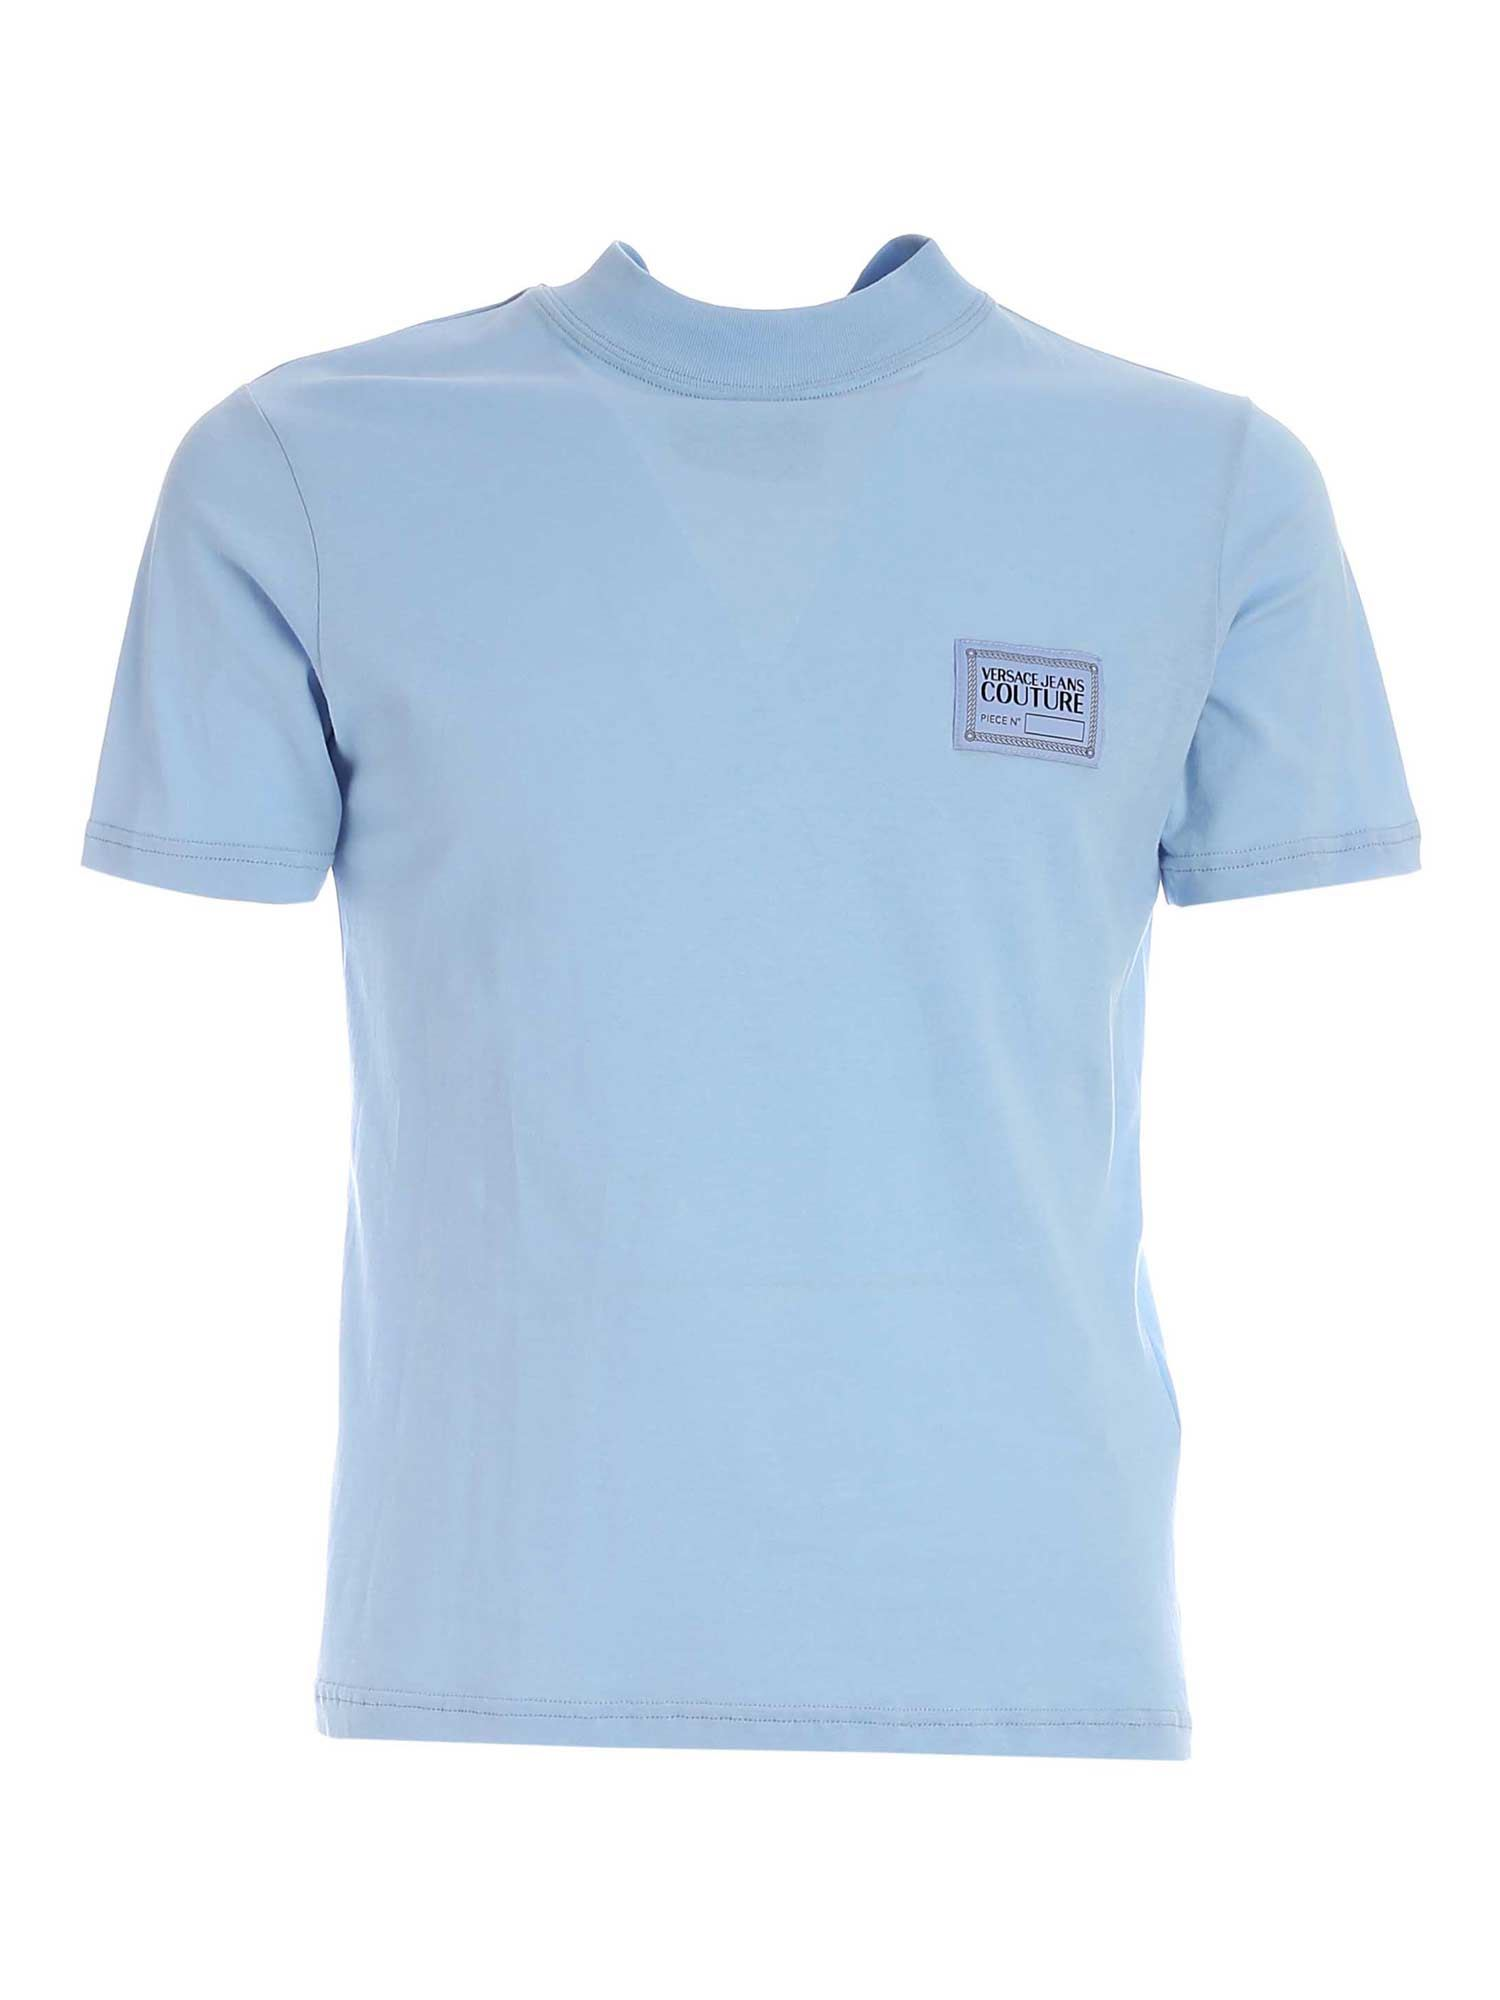 Versace Jeans Couture Cottons LOGO PATCH T-SHIRT IN LIGHT BLUE